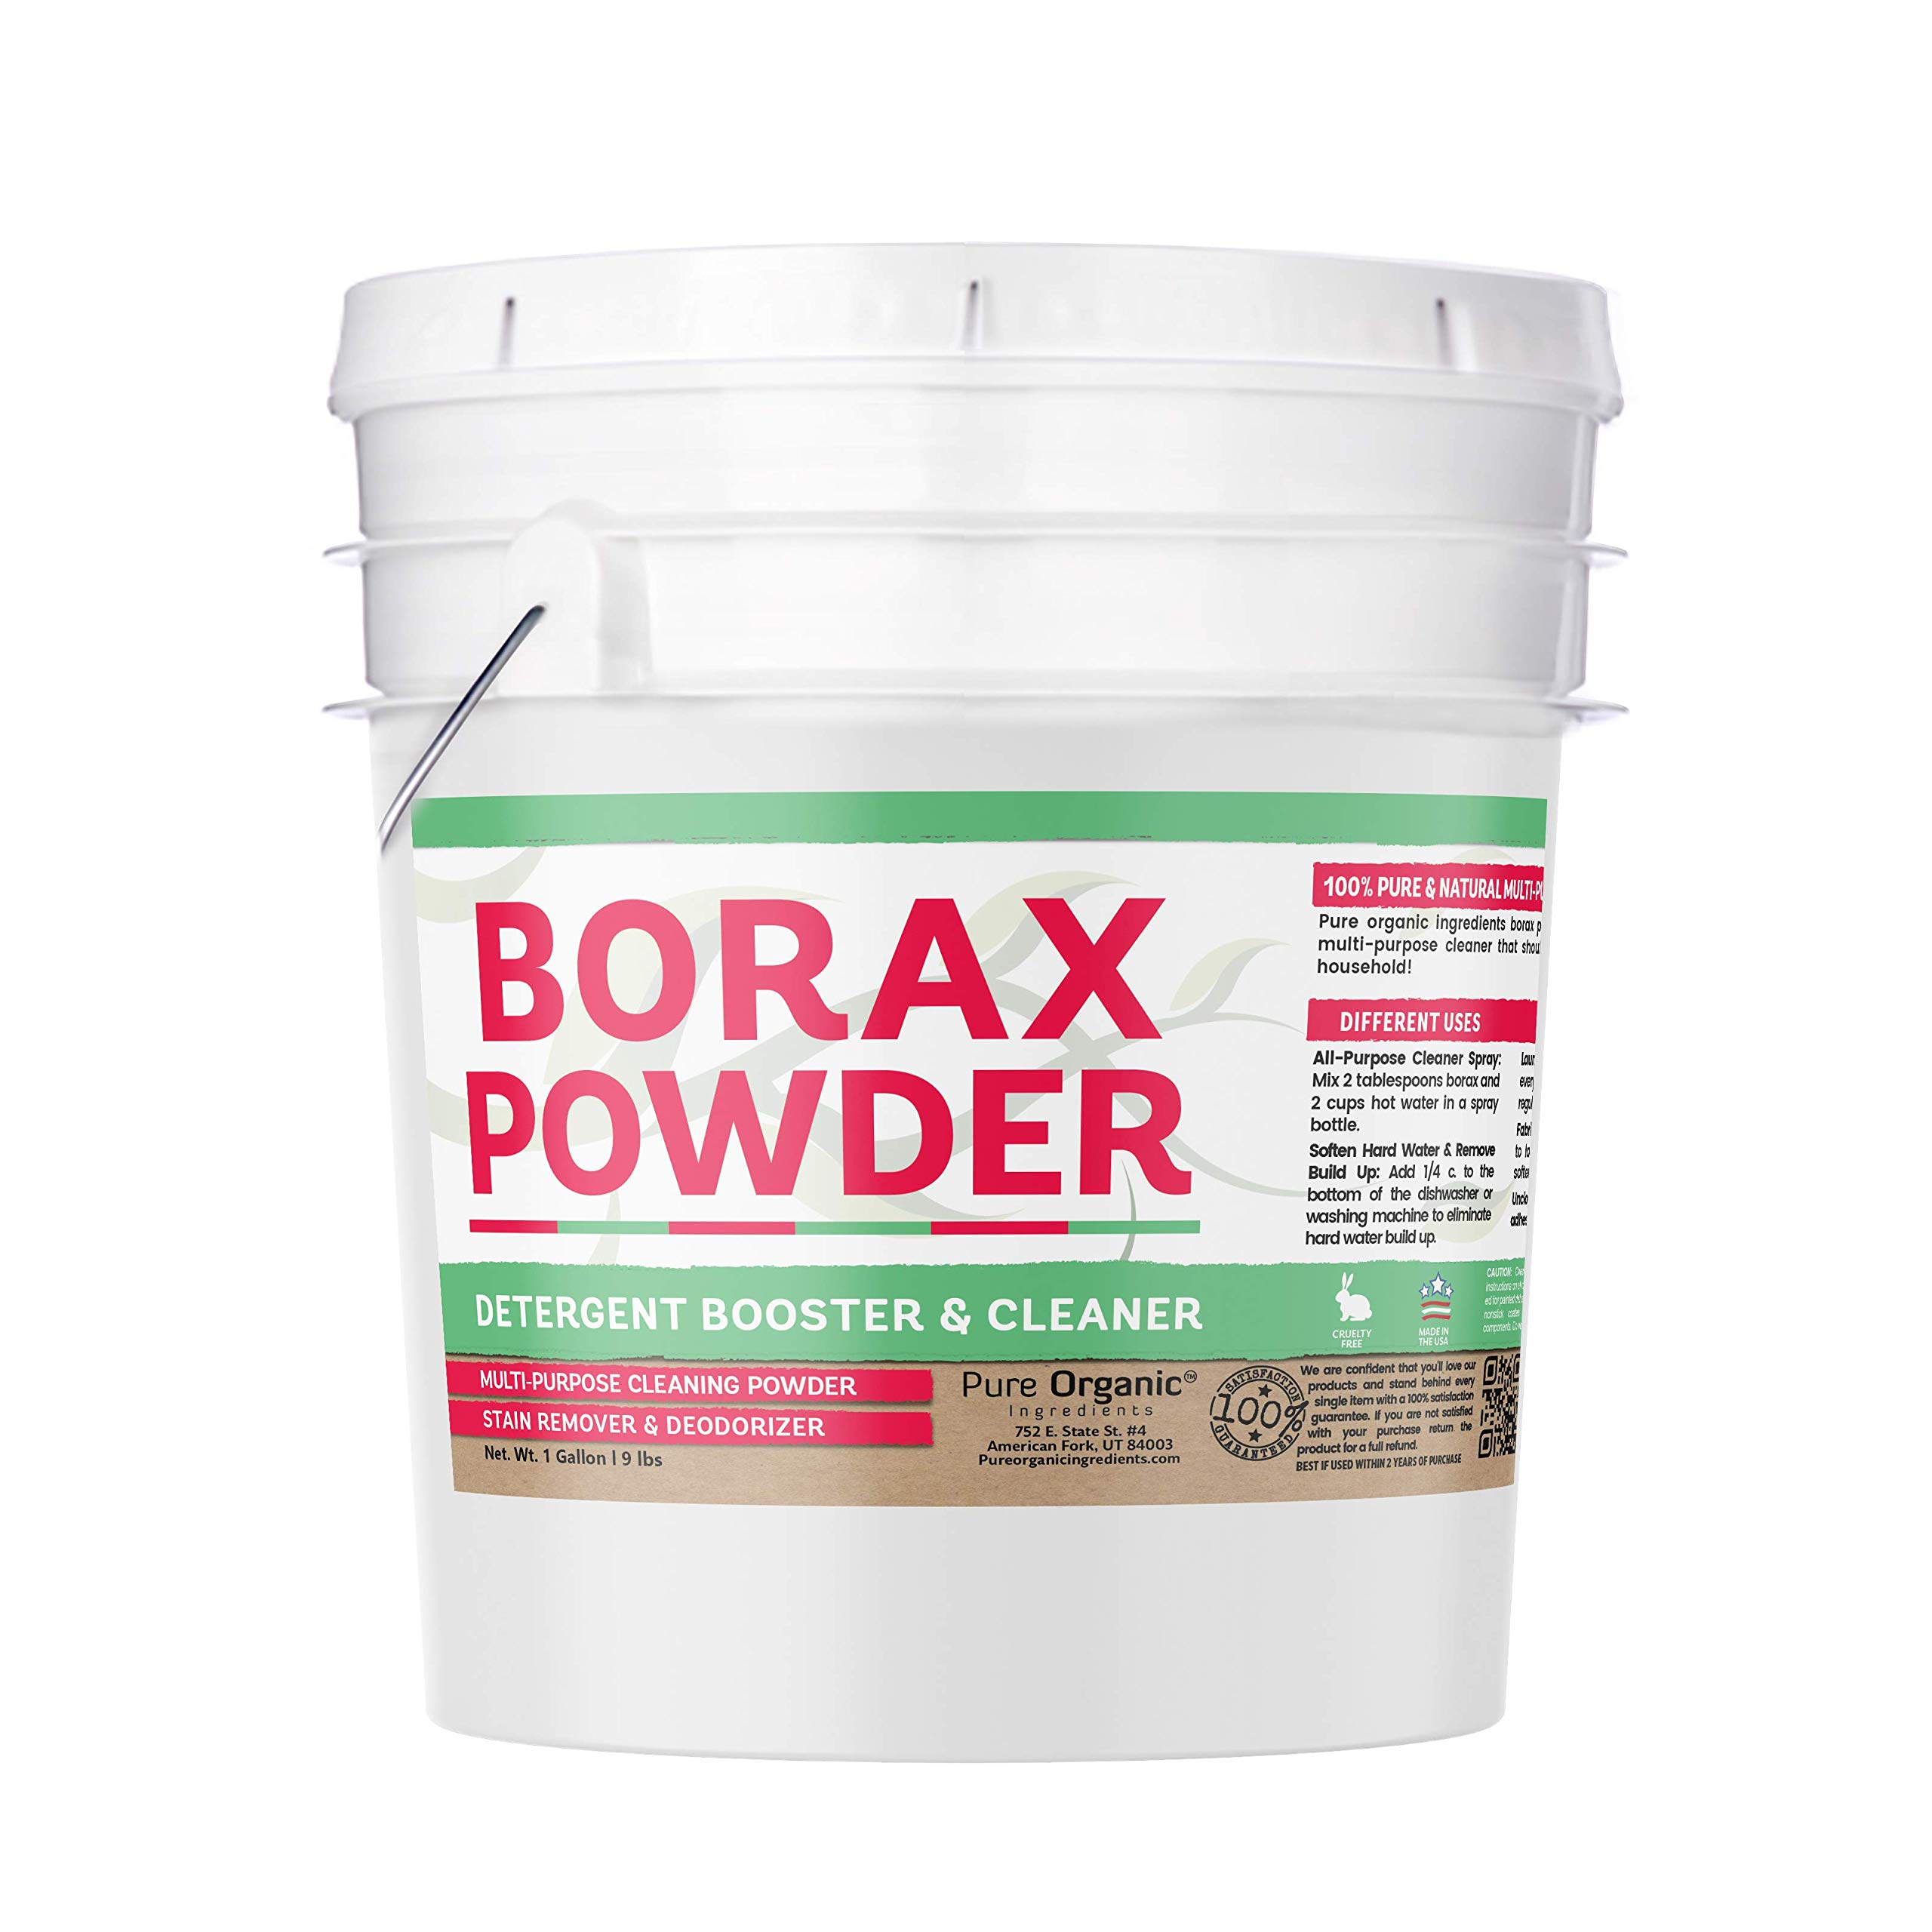 Borax Powder (1 Gallon, 9 lbs) by Pure Organic Ingredients, Resealable Bucket, Multi-Purpose Cleaning Powder, Deodorizer, Laundry Booster, Stain Remover, Slime Making